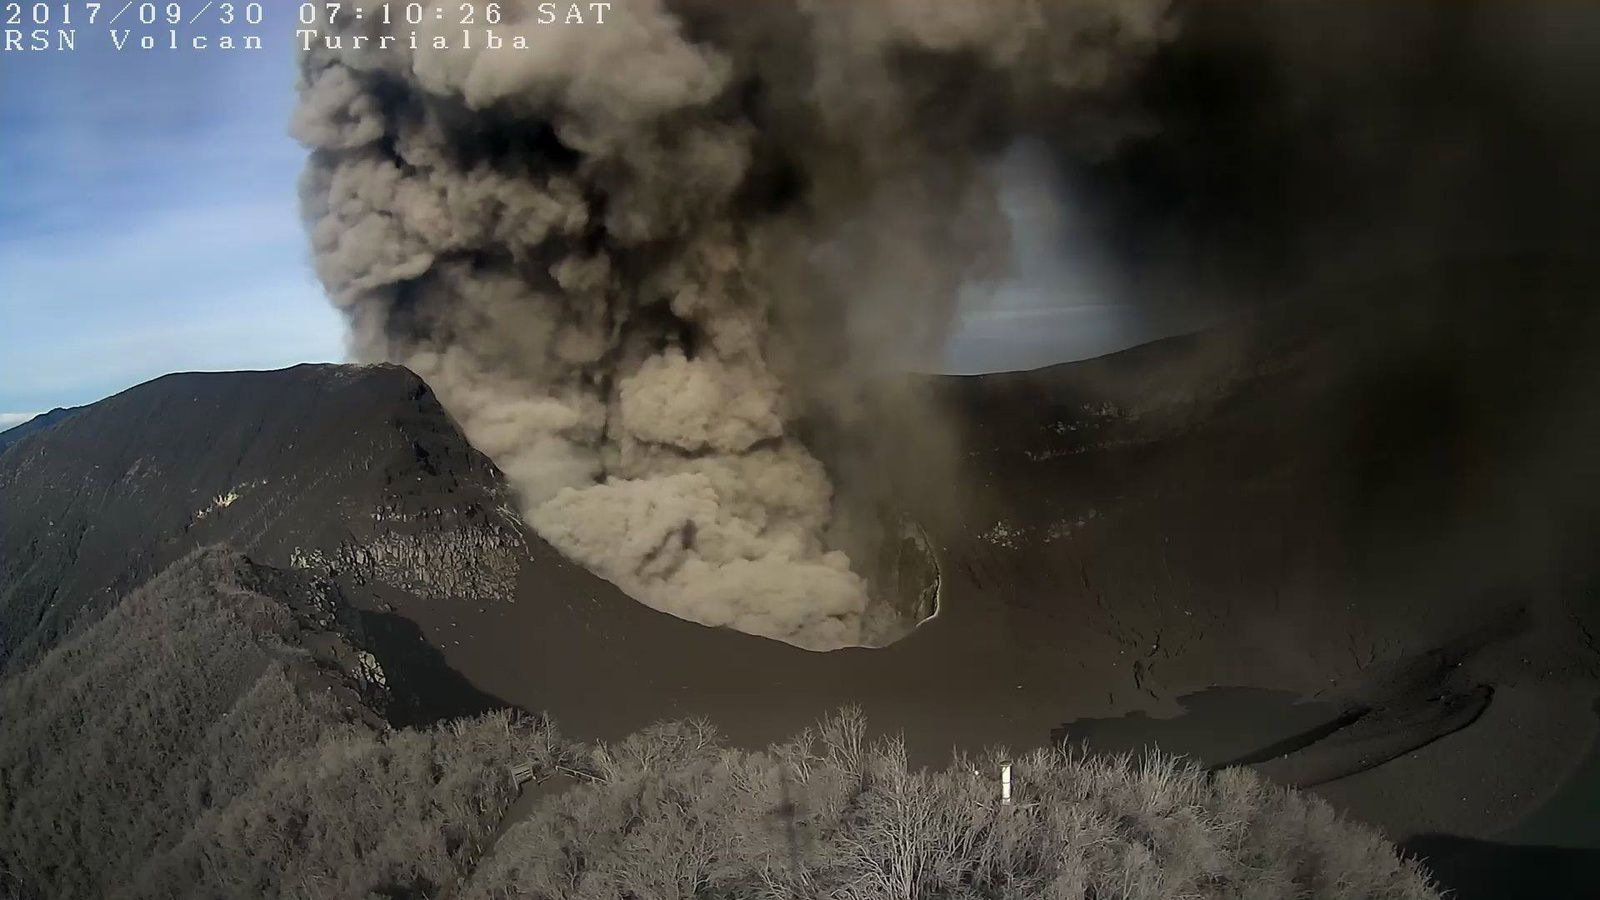 Turrialba - eruption in progress this 30.09.2017 at 7:10 local - ashes cover all the crater - webcam RSN